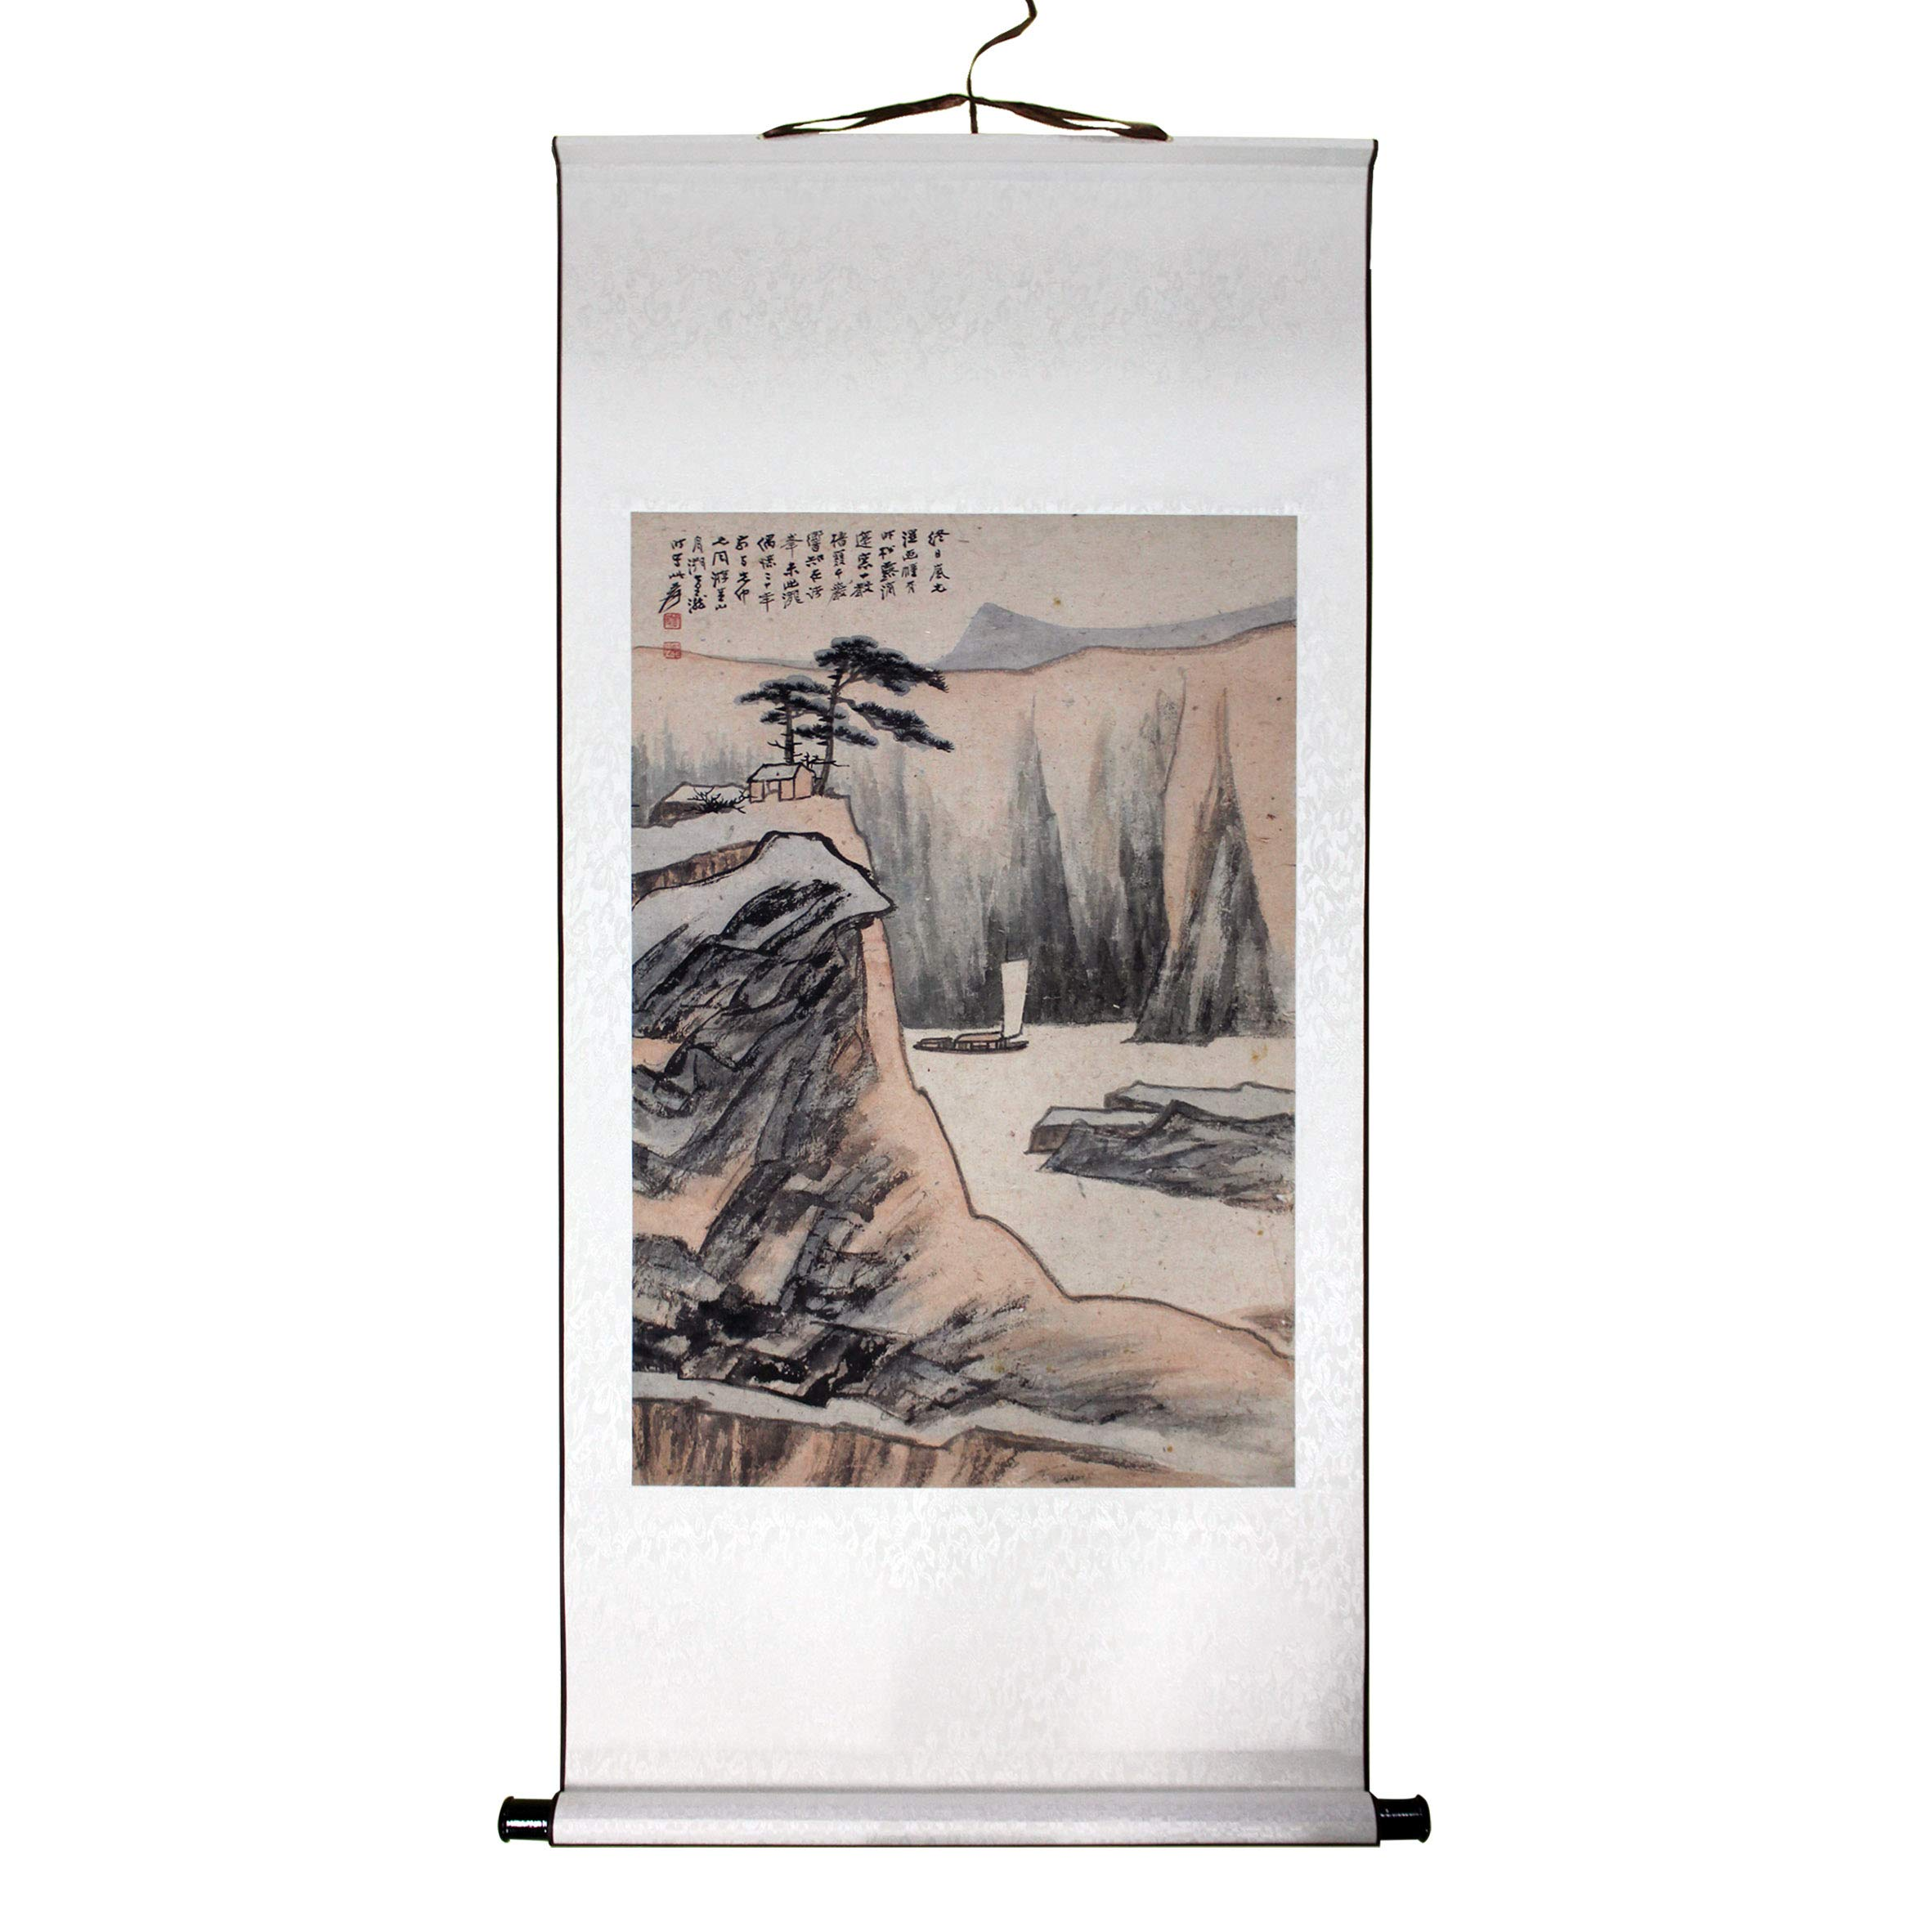 """Mountain and Water Imitation of Shitao's Style by Zhang Daqian, Chinese Painting Print on Rice Paper, Premium Hanging Scroll, Size 24"""" x 38"""", Painting Ready to Hang on Wall"""